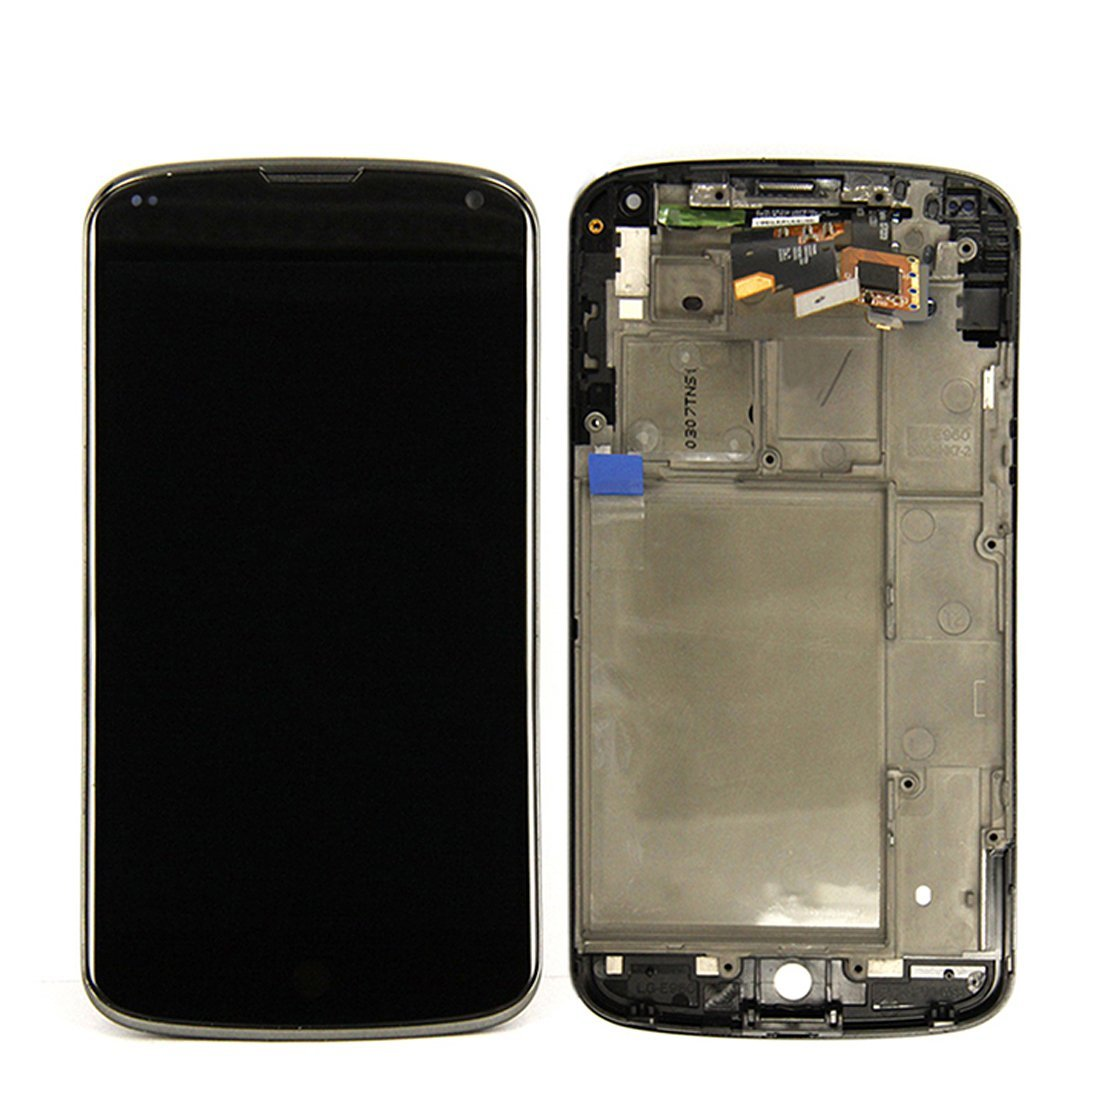 ePartSolution-OEM LG Google Nexus 4 e960 LCD Touch Digitizer Screen Assembly with Housing Frame Replacement Part USA Seller